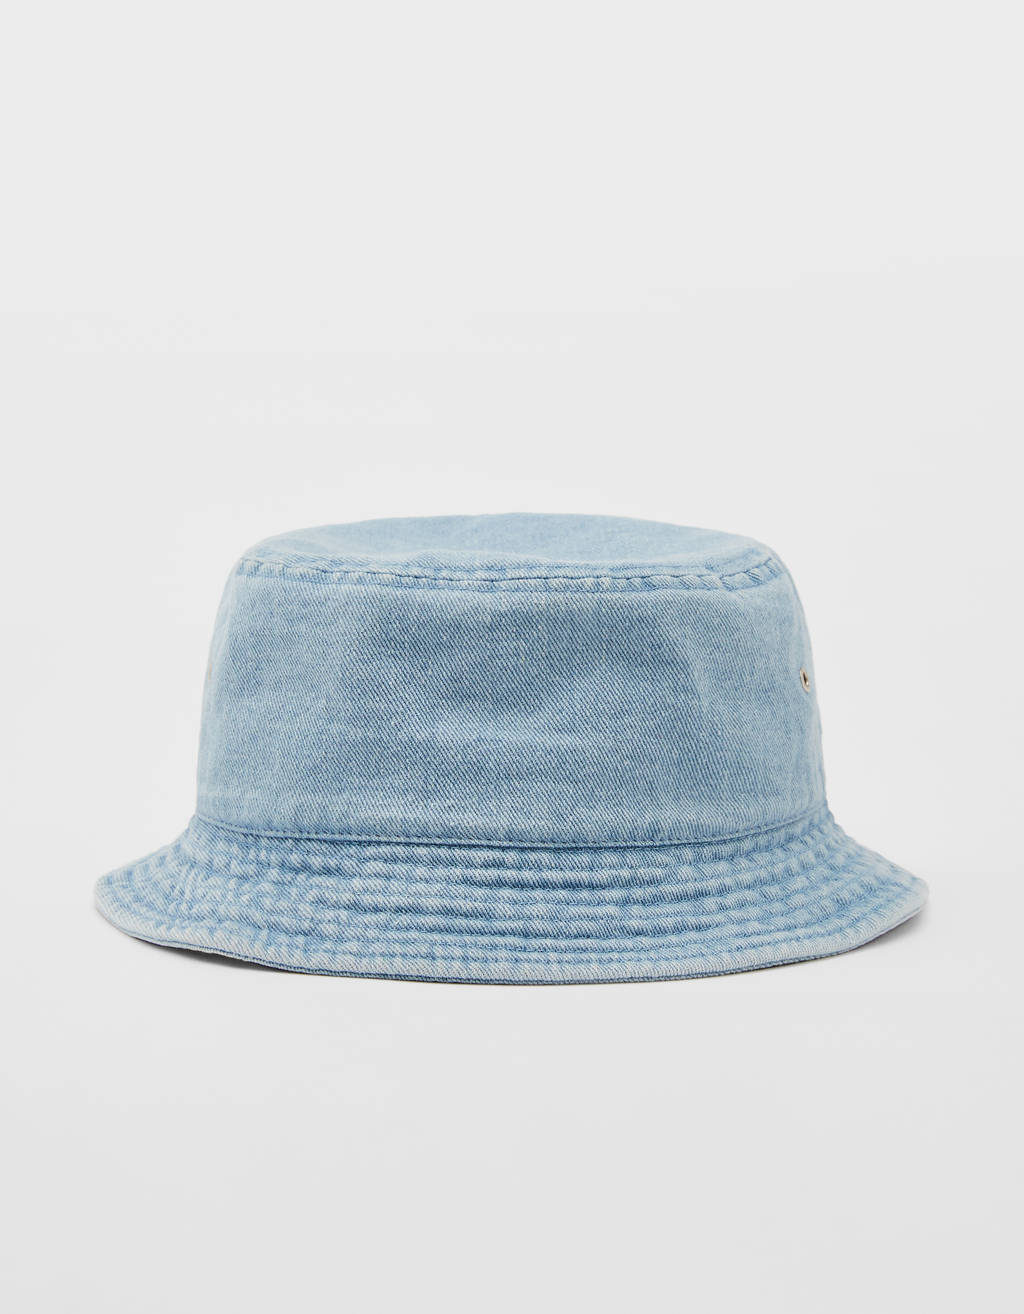 Sombrero denim